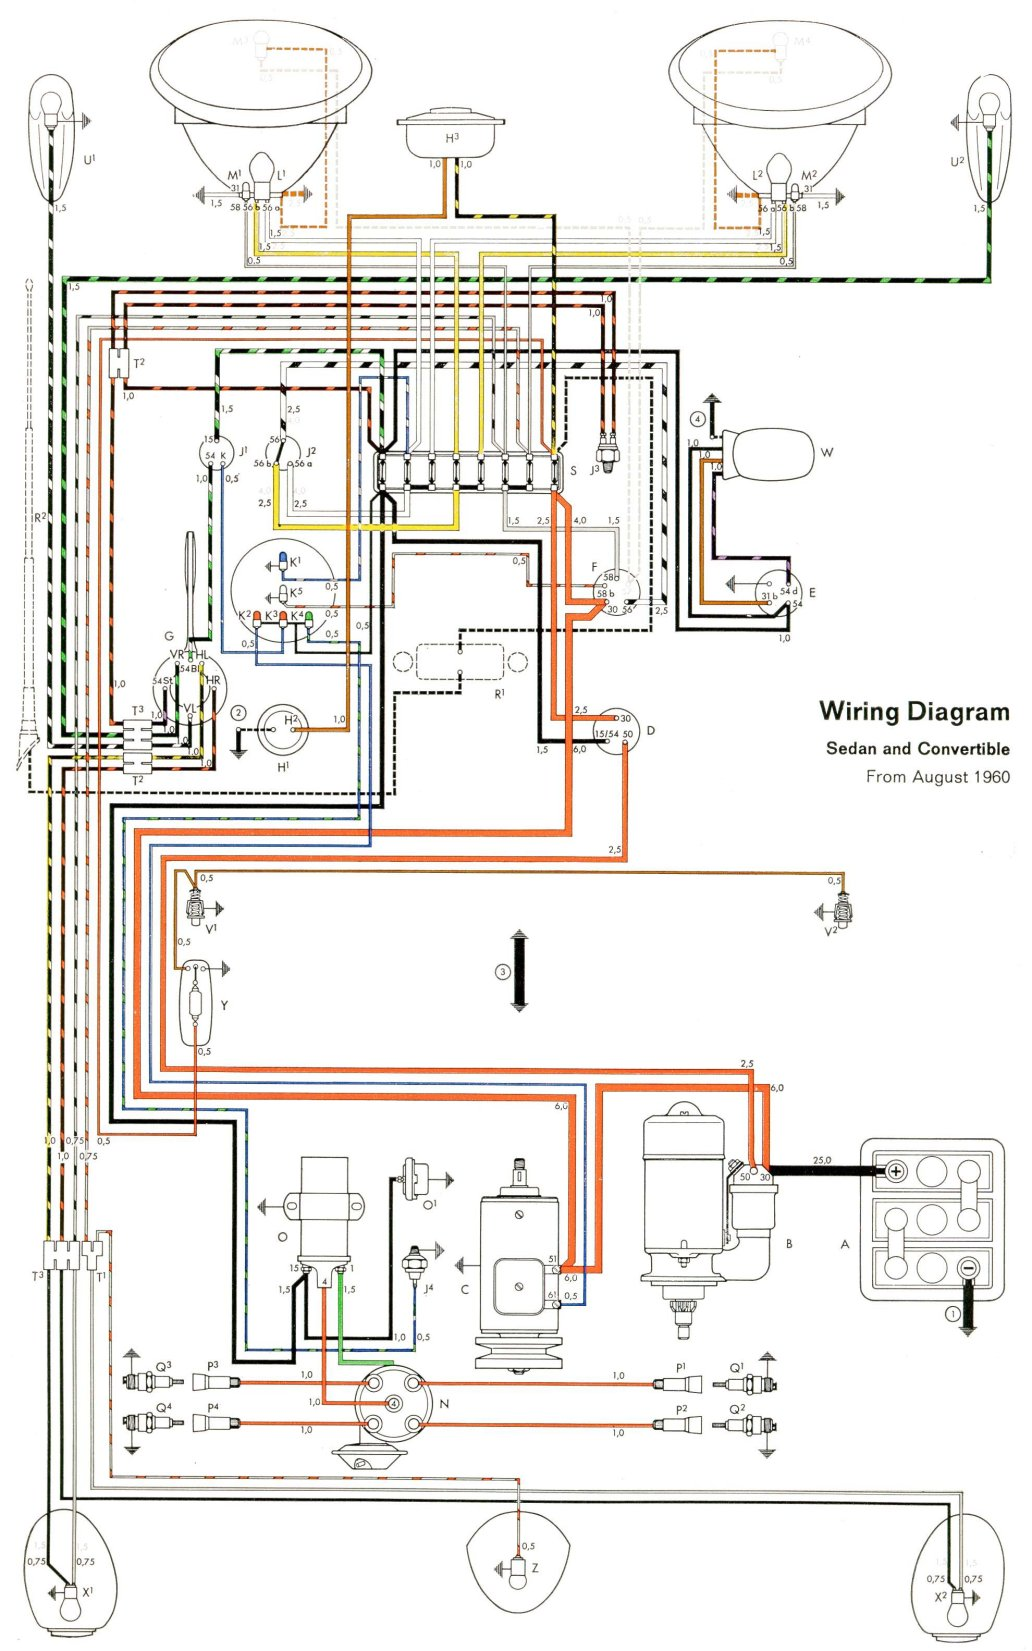 bug_61 thesamba com type 1 wiring diagrams vw beetle wiring diagram at pacquiaovsvargaslive.co